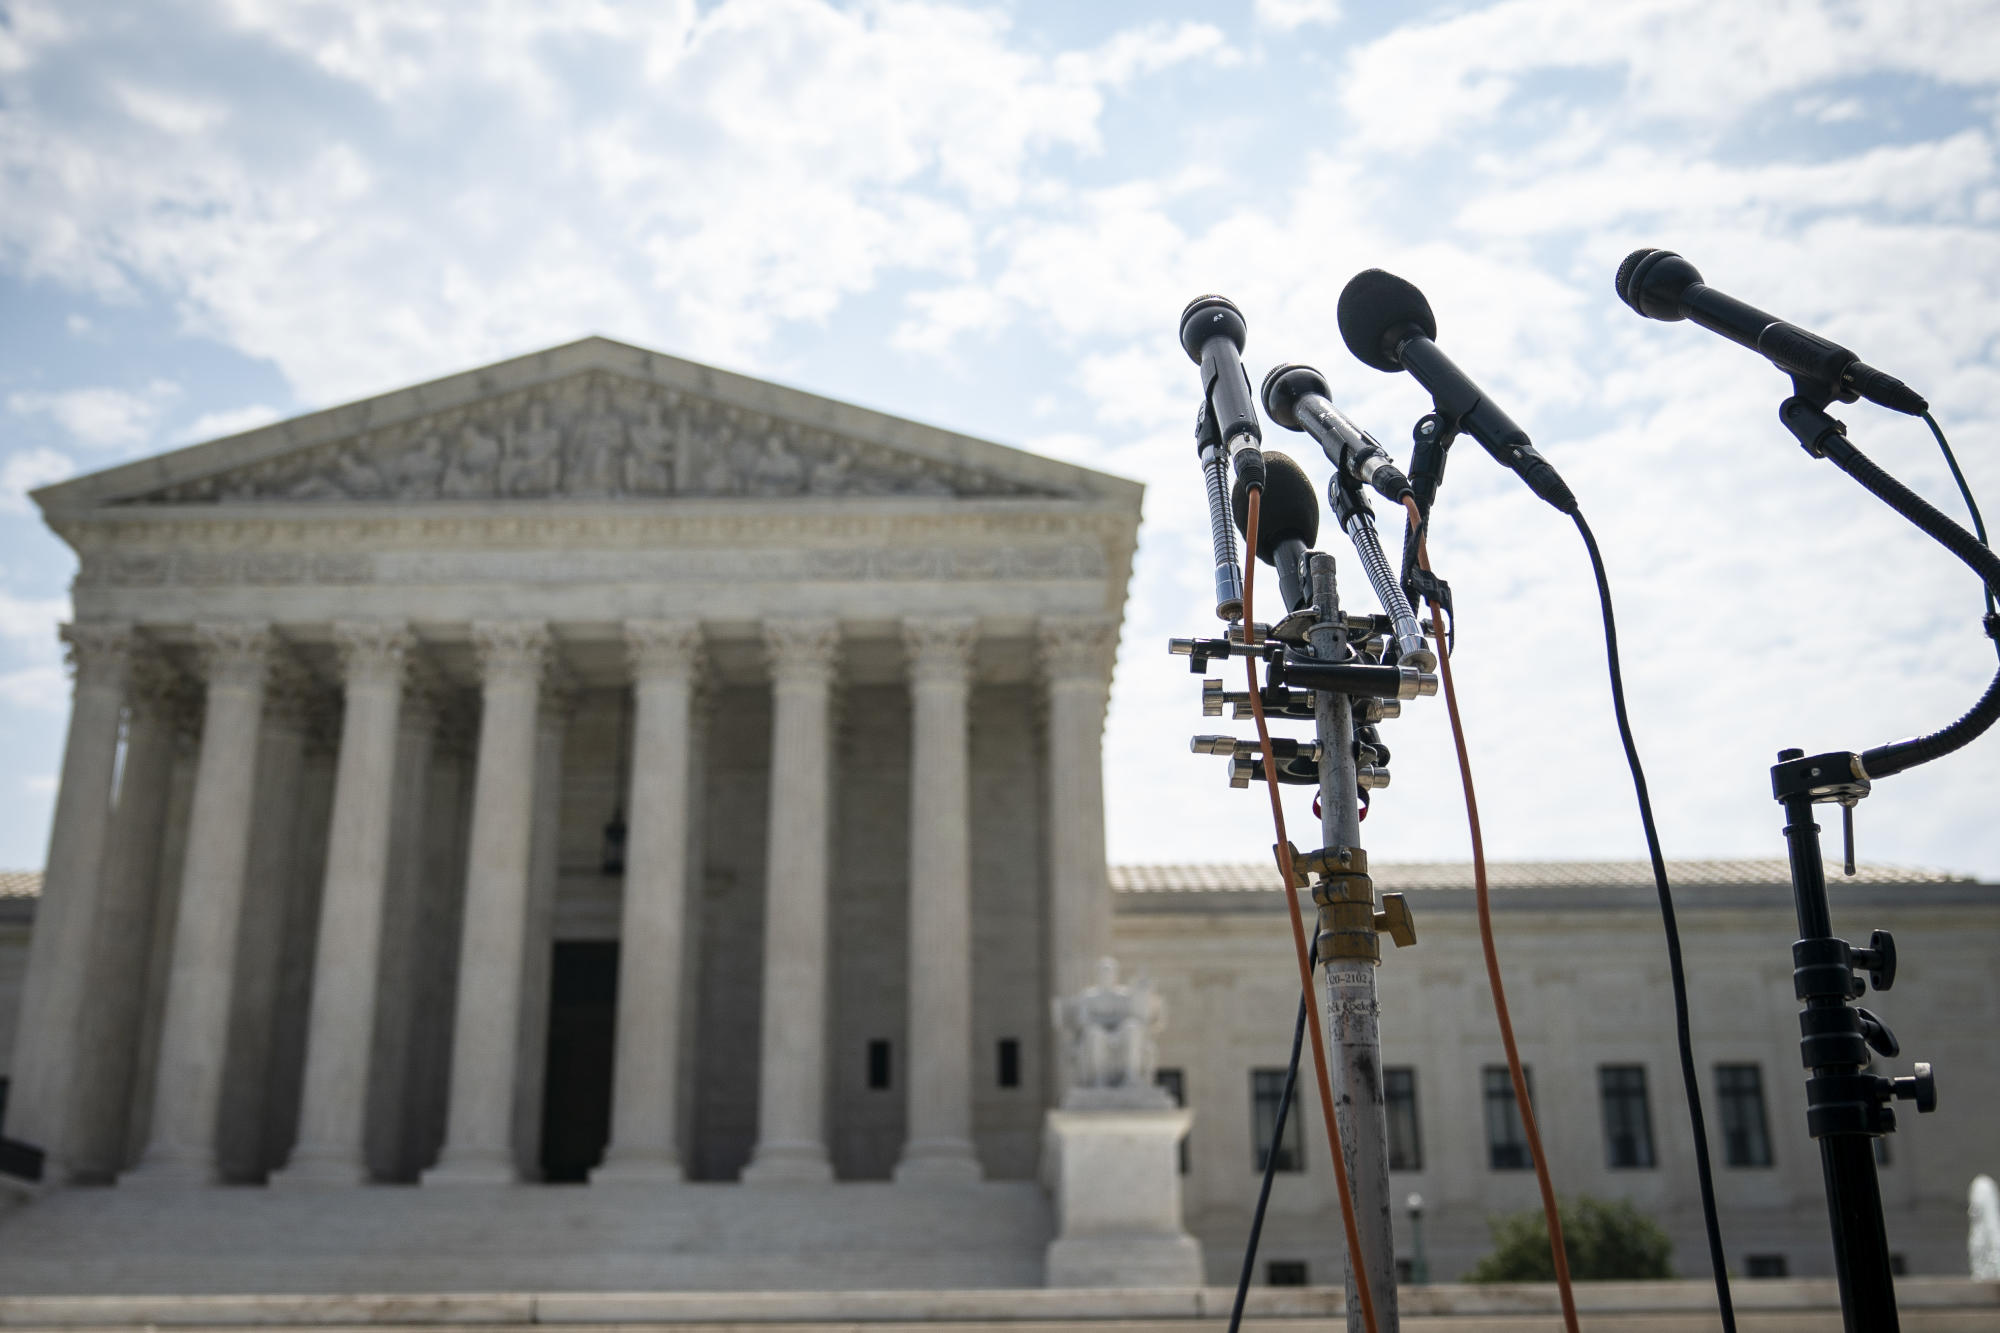 Supreme Court ruling could make robocalls 'virtually unstoppable'